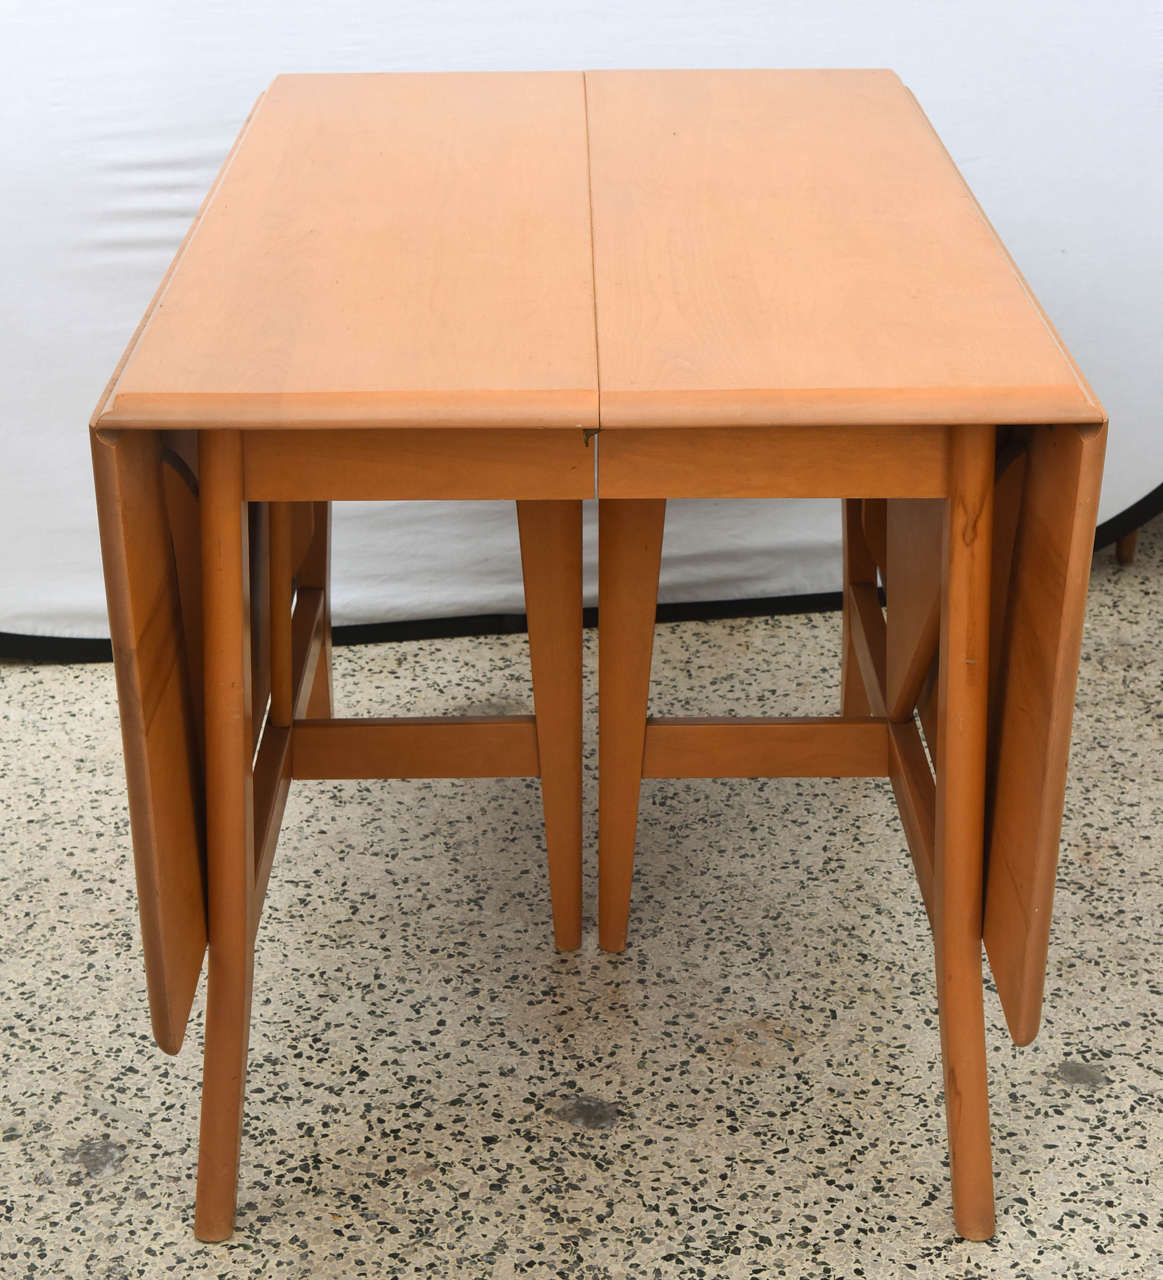 Maple Heywood Wakefield Drop Leaf Dining Table Six Chairs Two Leaves 1950s